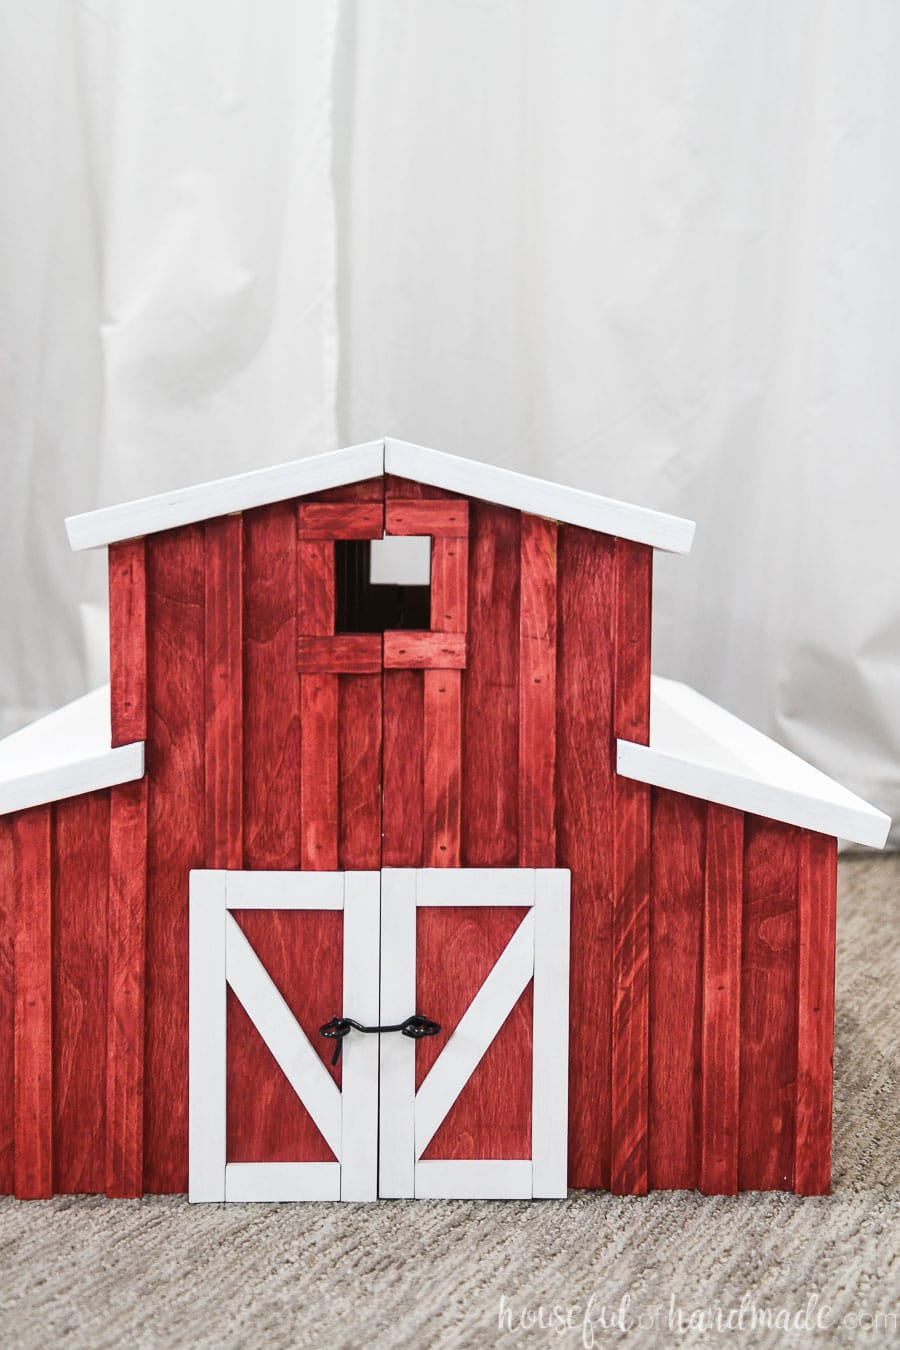 Front view of the toy barn build with lots of details and white trimmed barn doors.